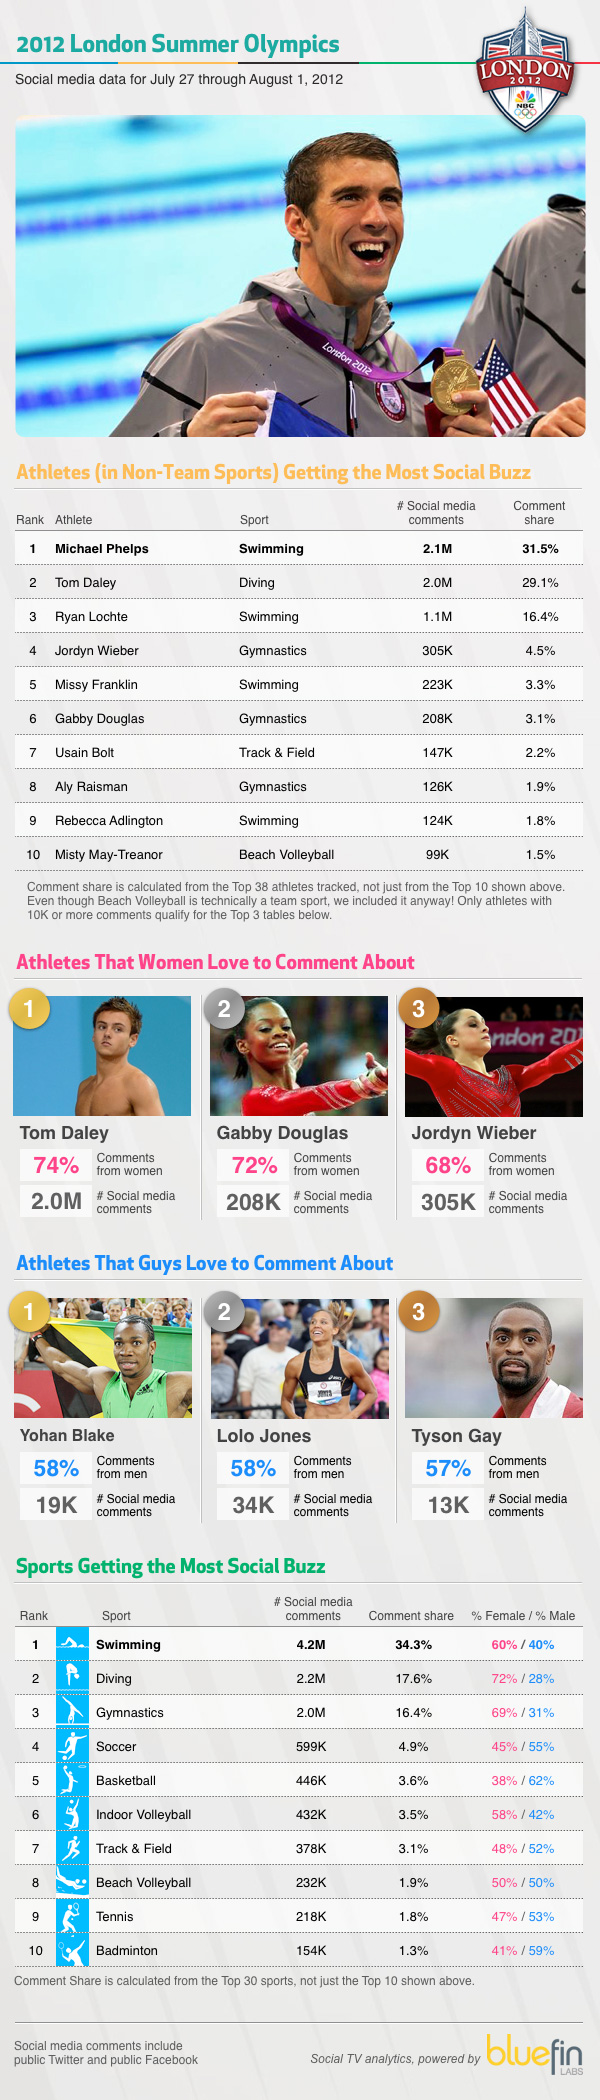 Olympic athletes with the most social buzz